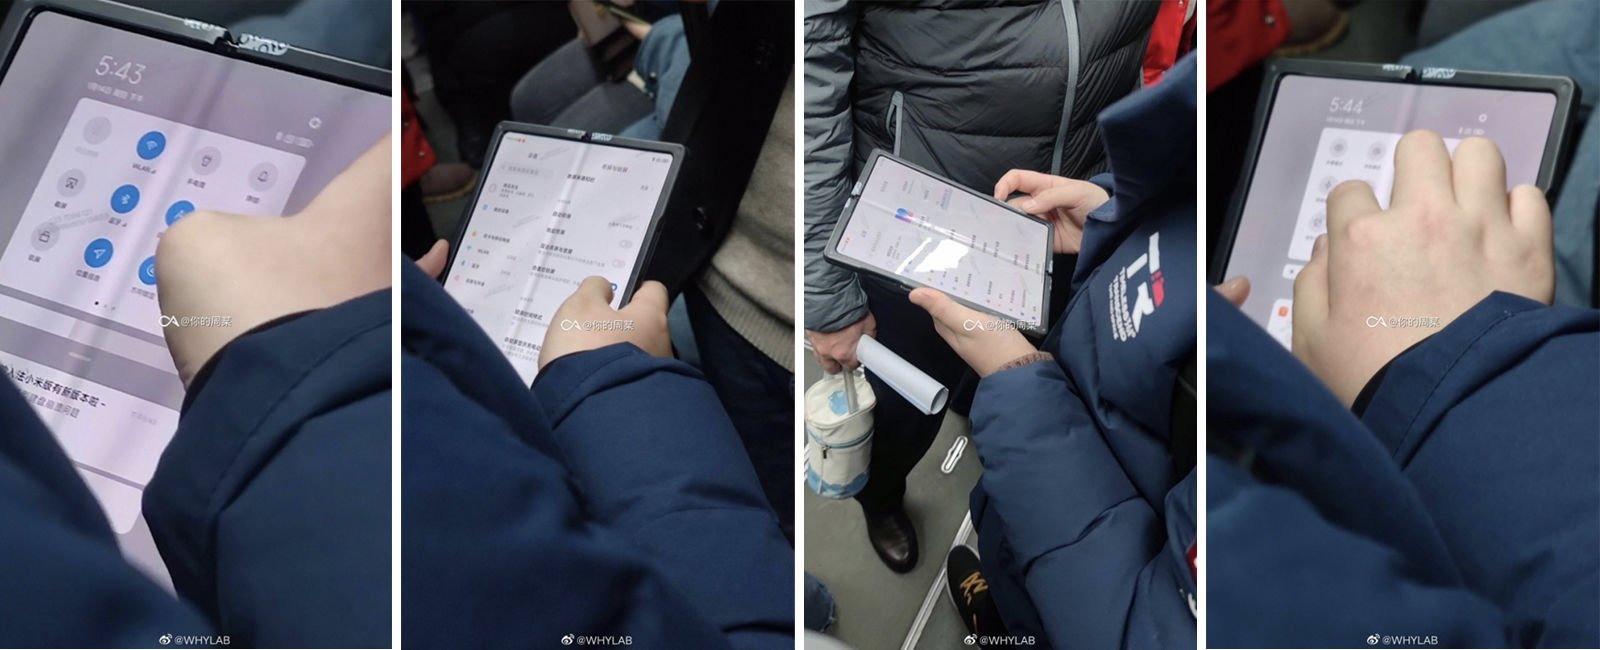 Spyshots of Xiaomi's folding phone concept | Source: Weibo (since removed)